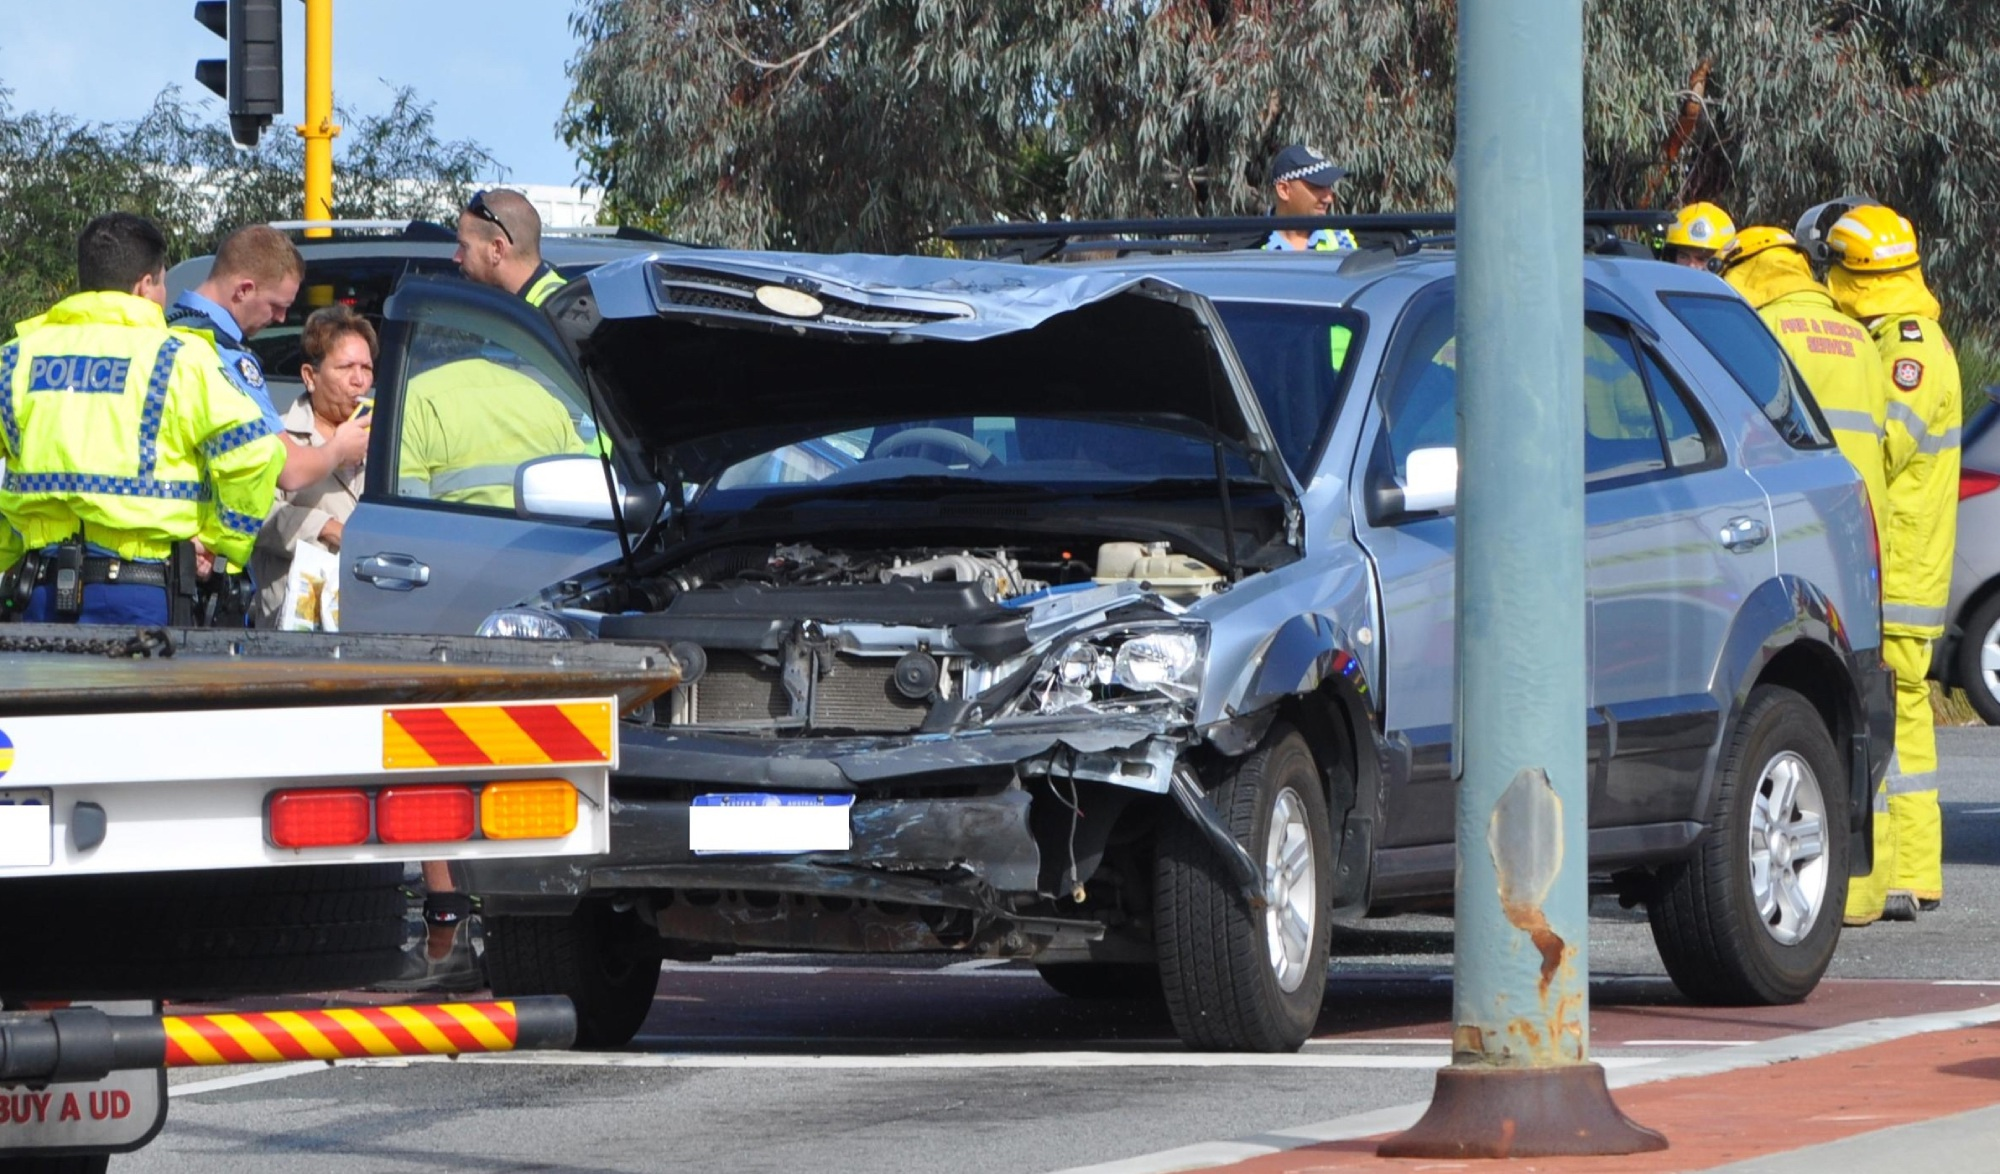 Another crash on Joondalup Drive on Wednesday.